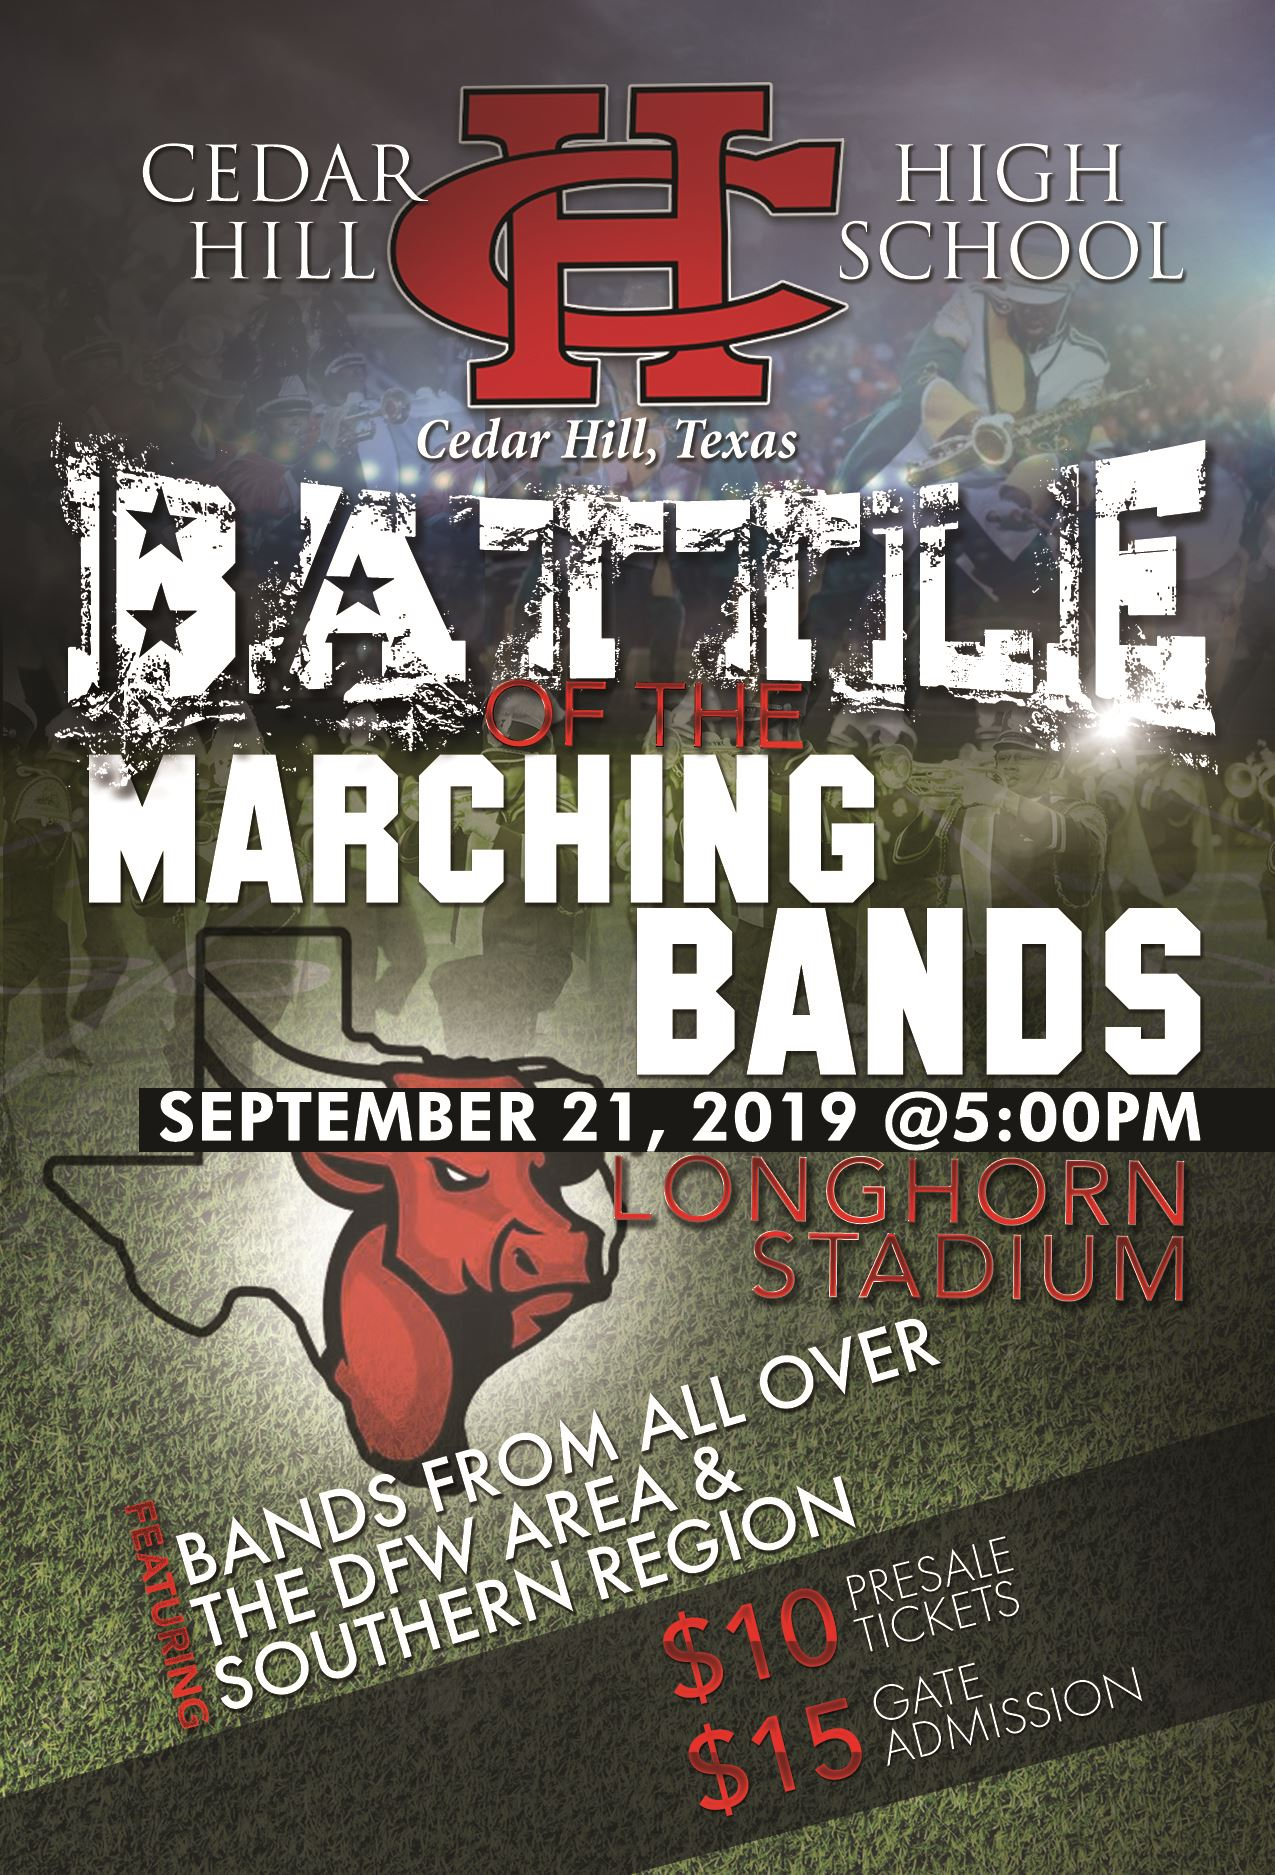 Battle of the Bands Sep 21 5pm